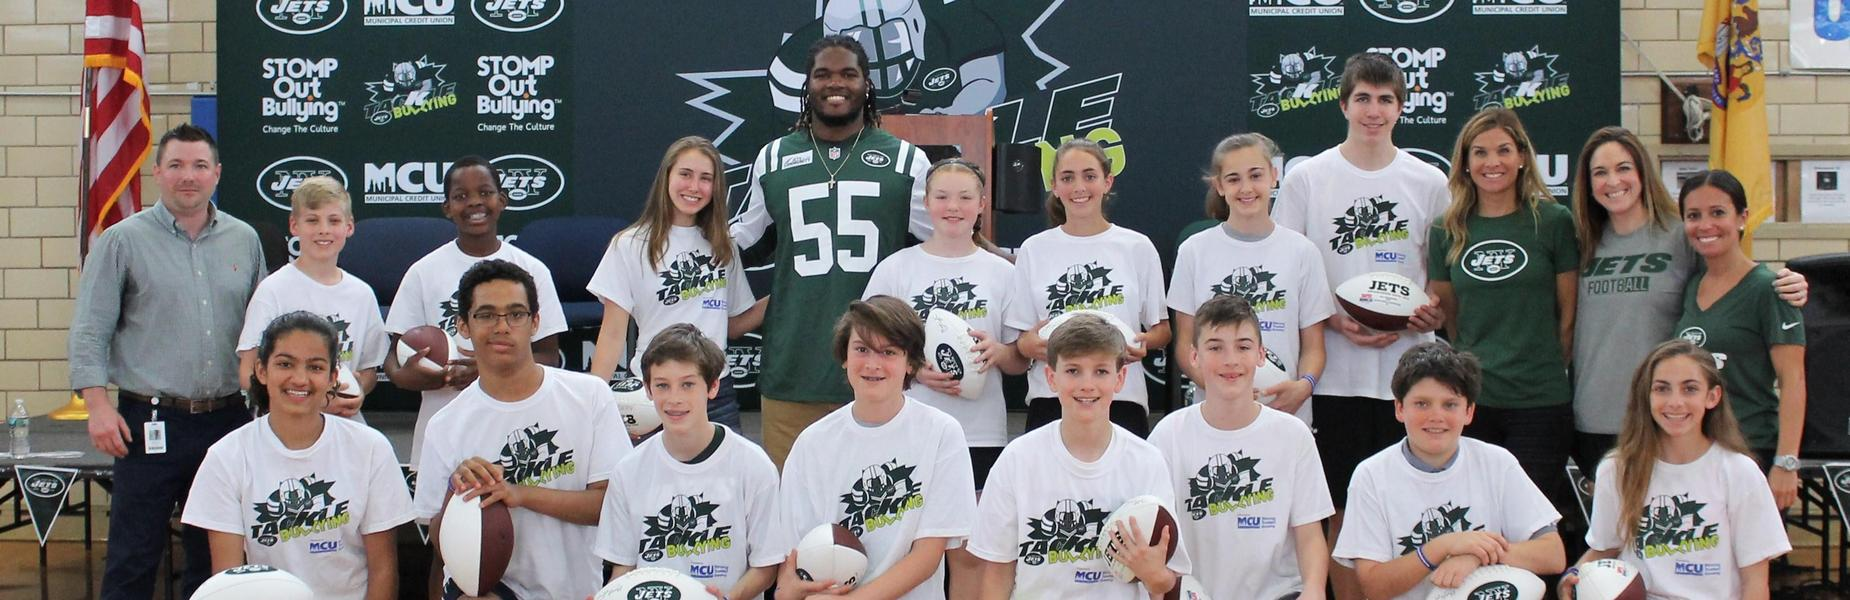 New York Jets Linebacker Lorenzo Mauldin visited Edison Intermediate School on May 4, praising students and staff for creating a supportive school culture that says no to bullying and yes to kindness and empathy.